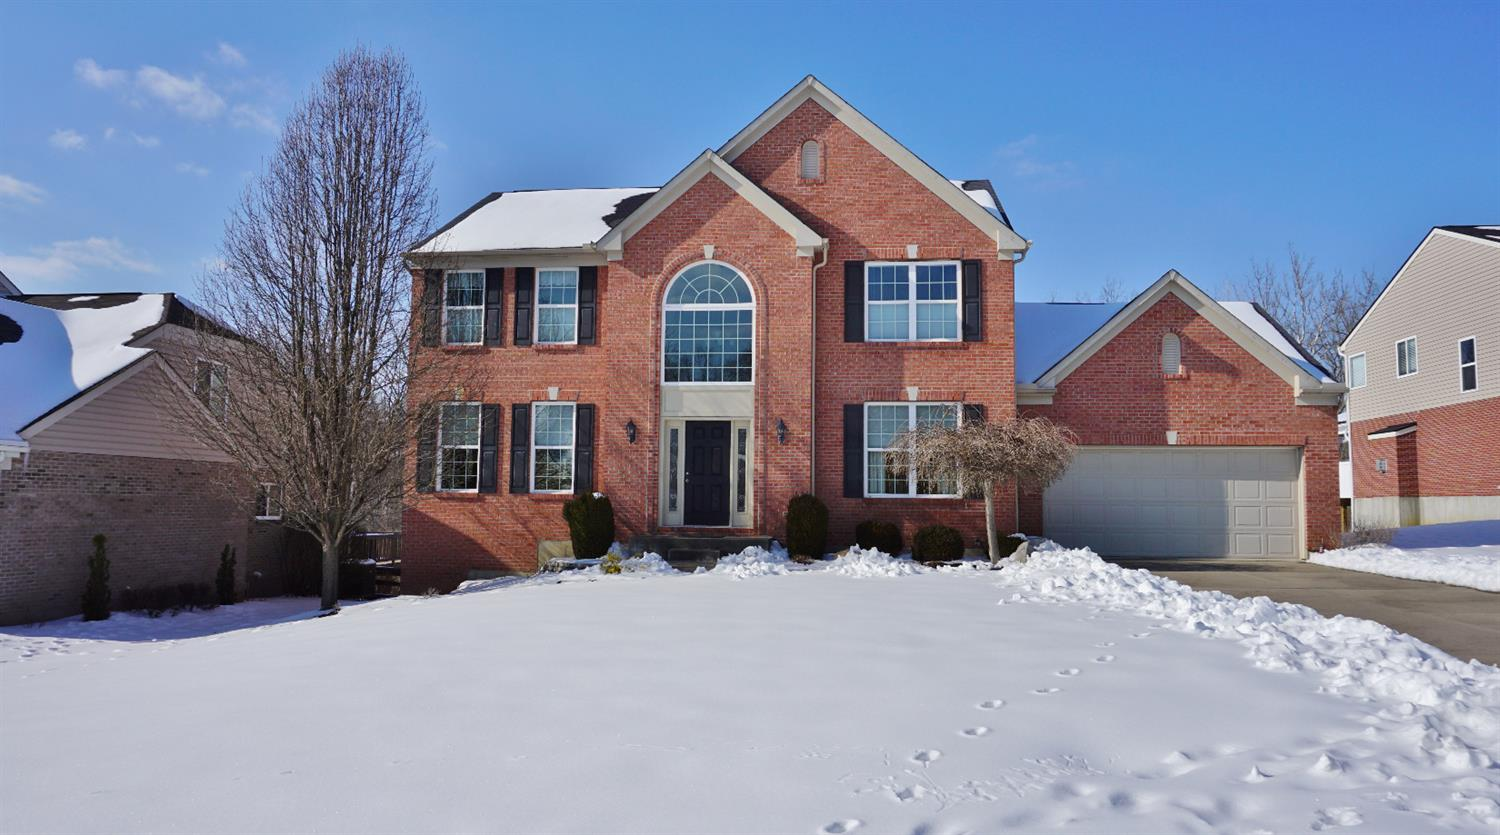 240 Newpine Dr Cleves, OH